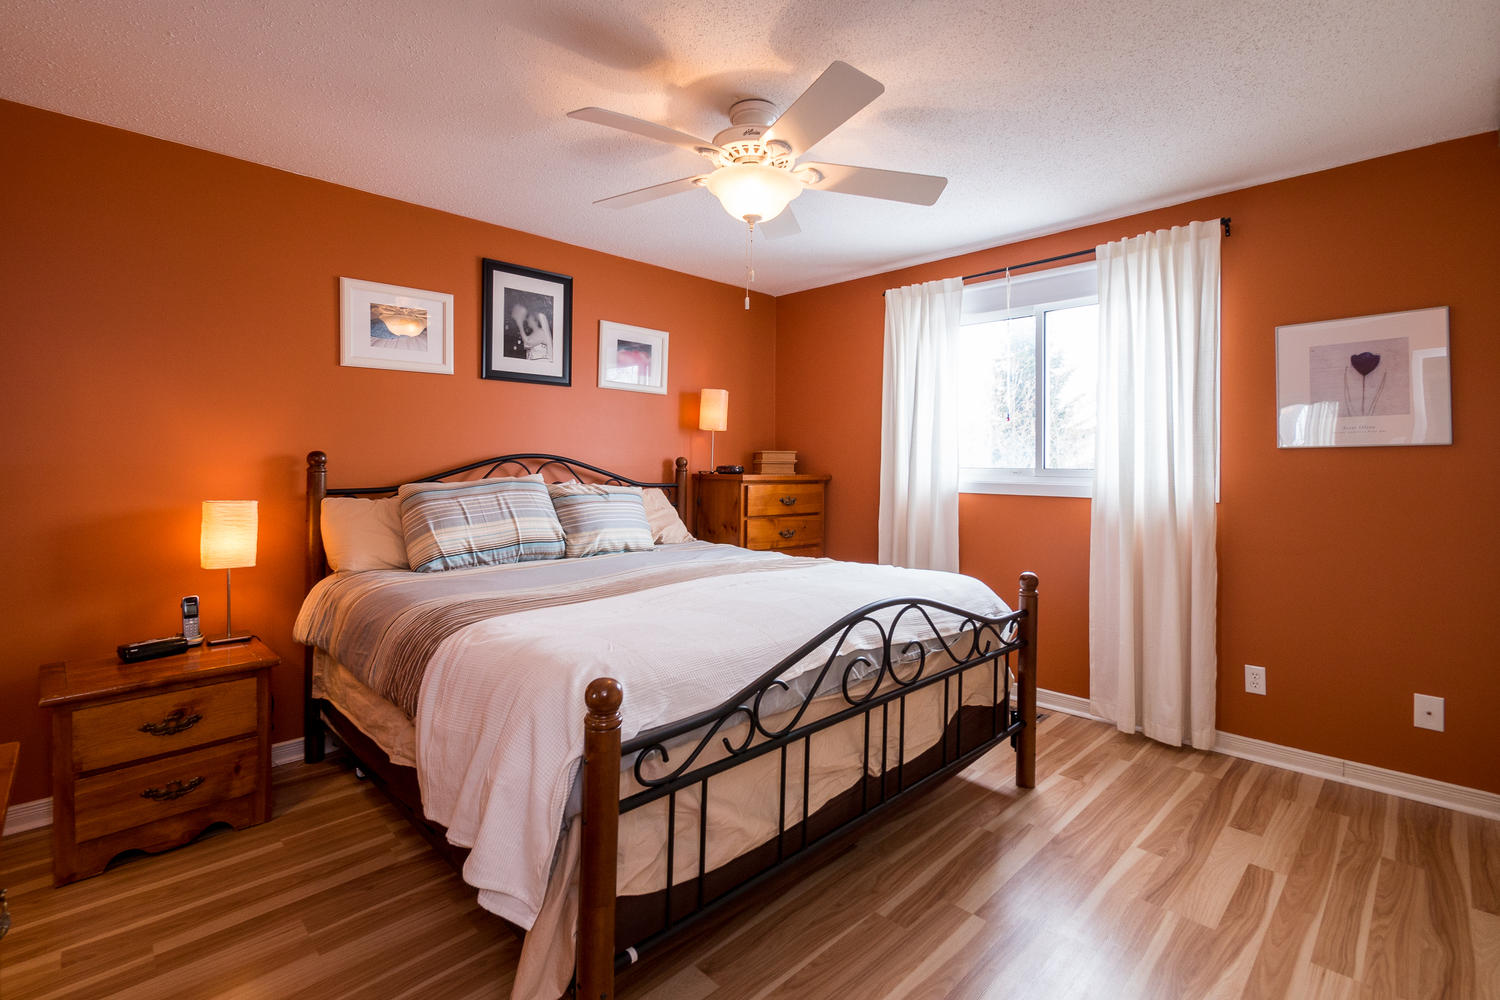 2 benlark rd ottawa on k2j 2l4 large 018 15 master bedroom for 2 master bedroom homes for sale